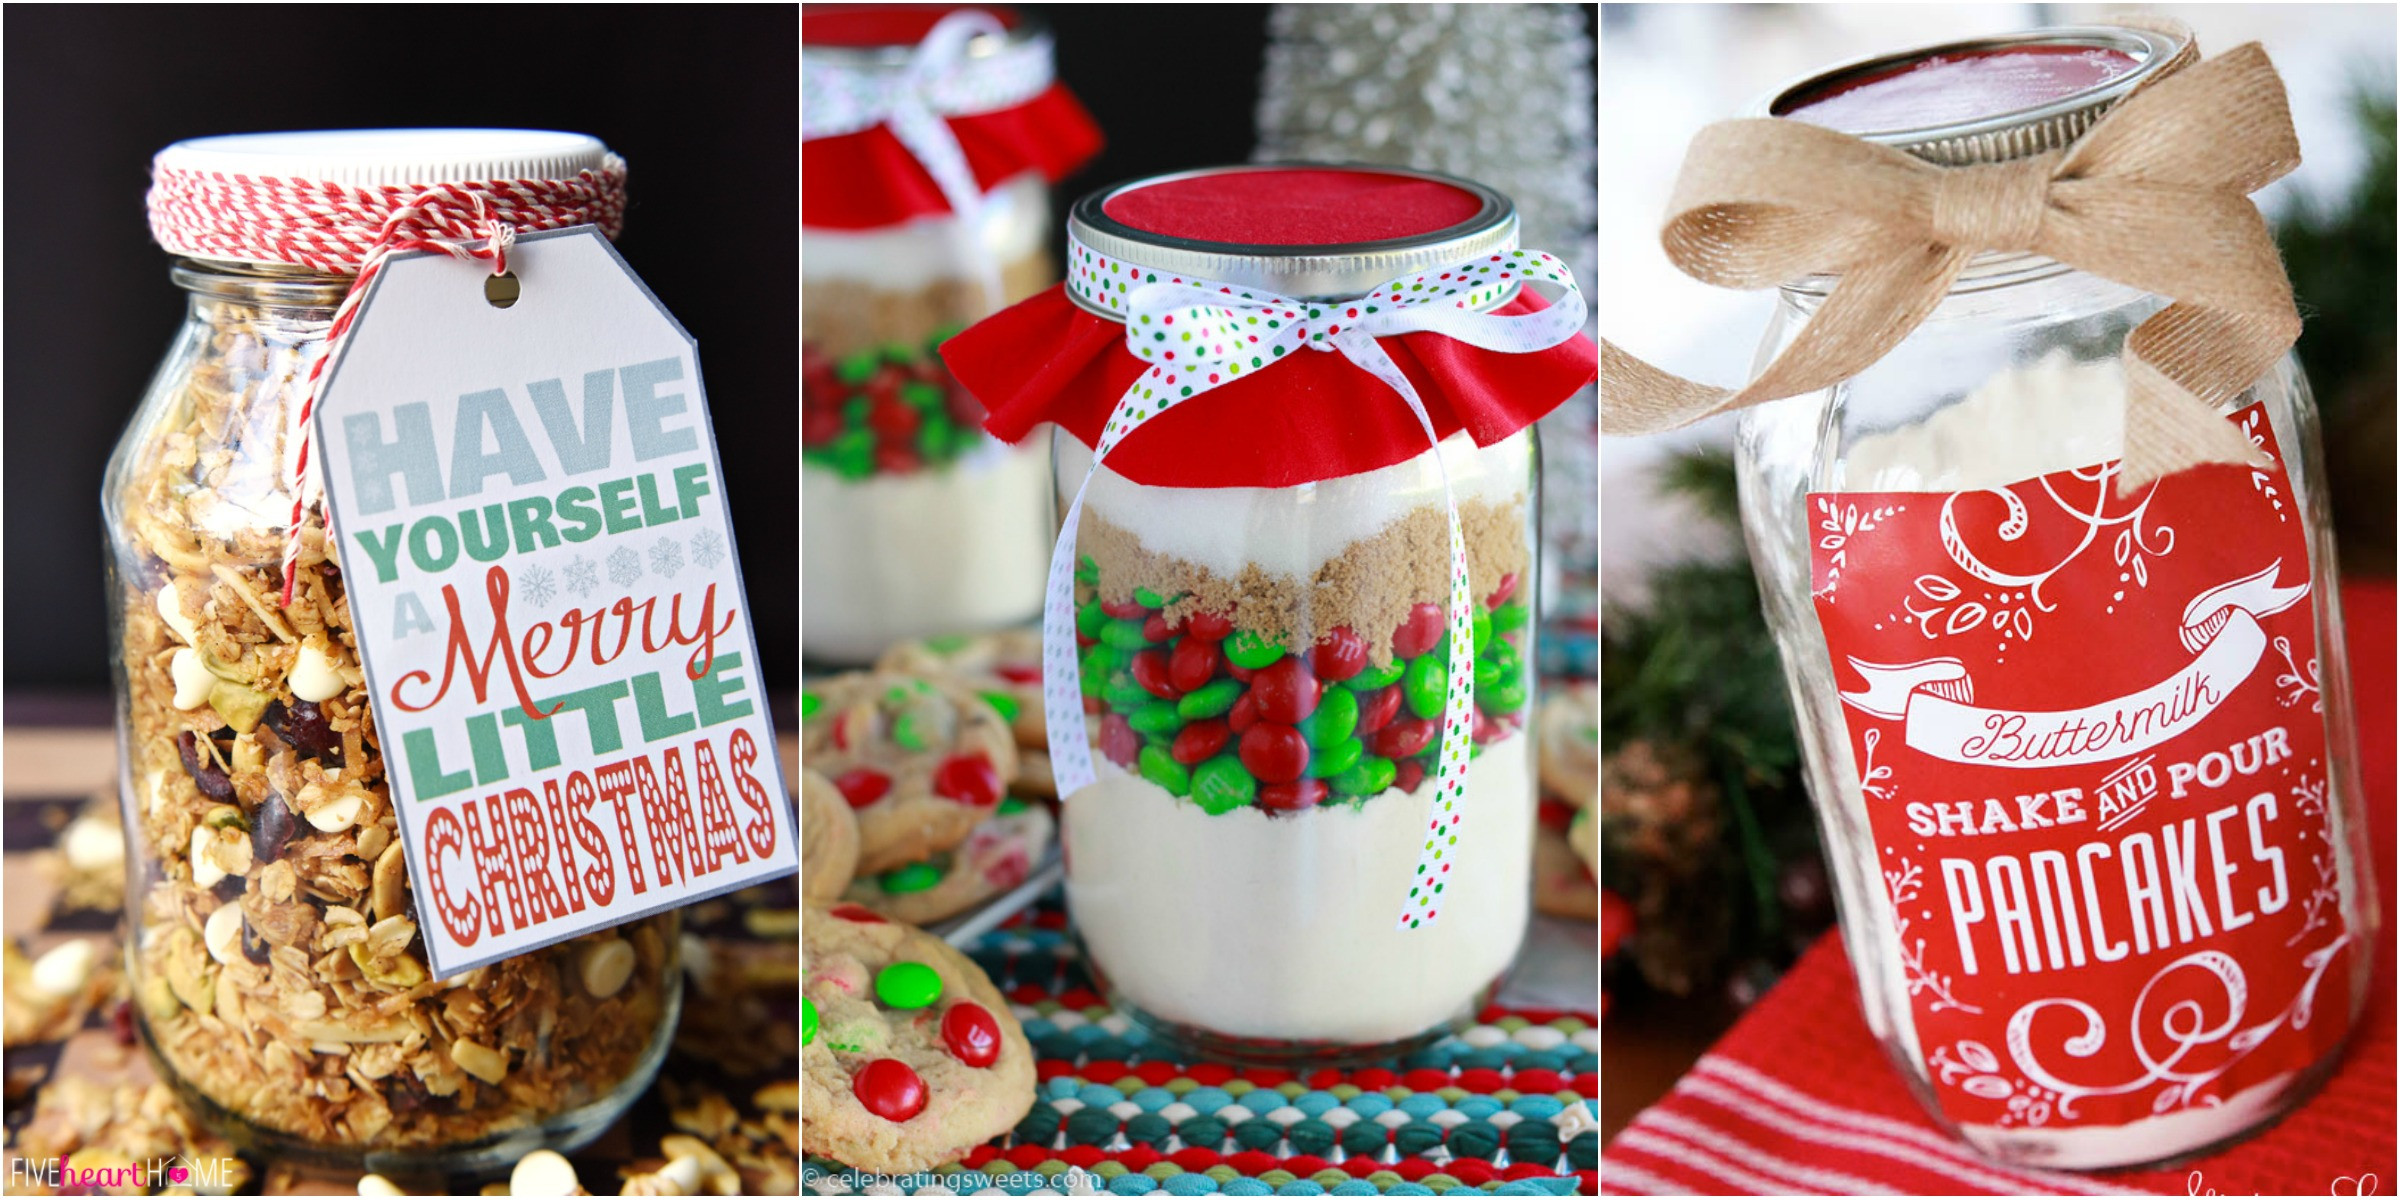 Best Food Gifts For Christmas  34 Mason Jar Christmas Food Gifts – Recipes for Gifts in a